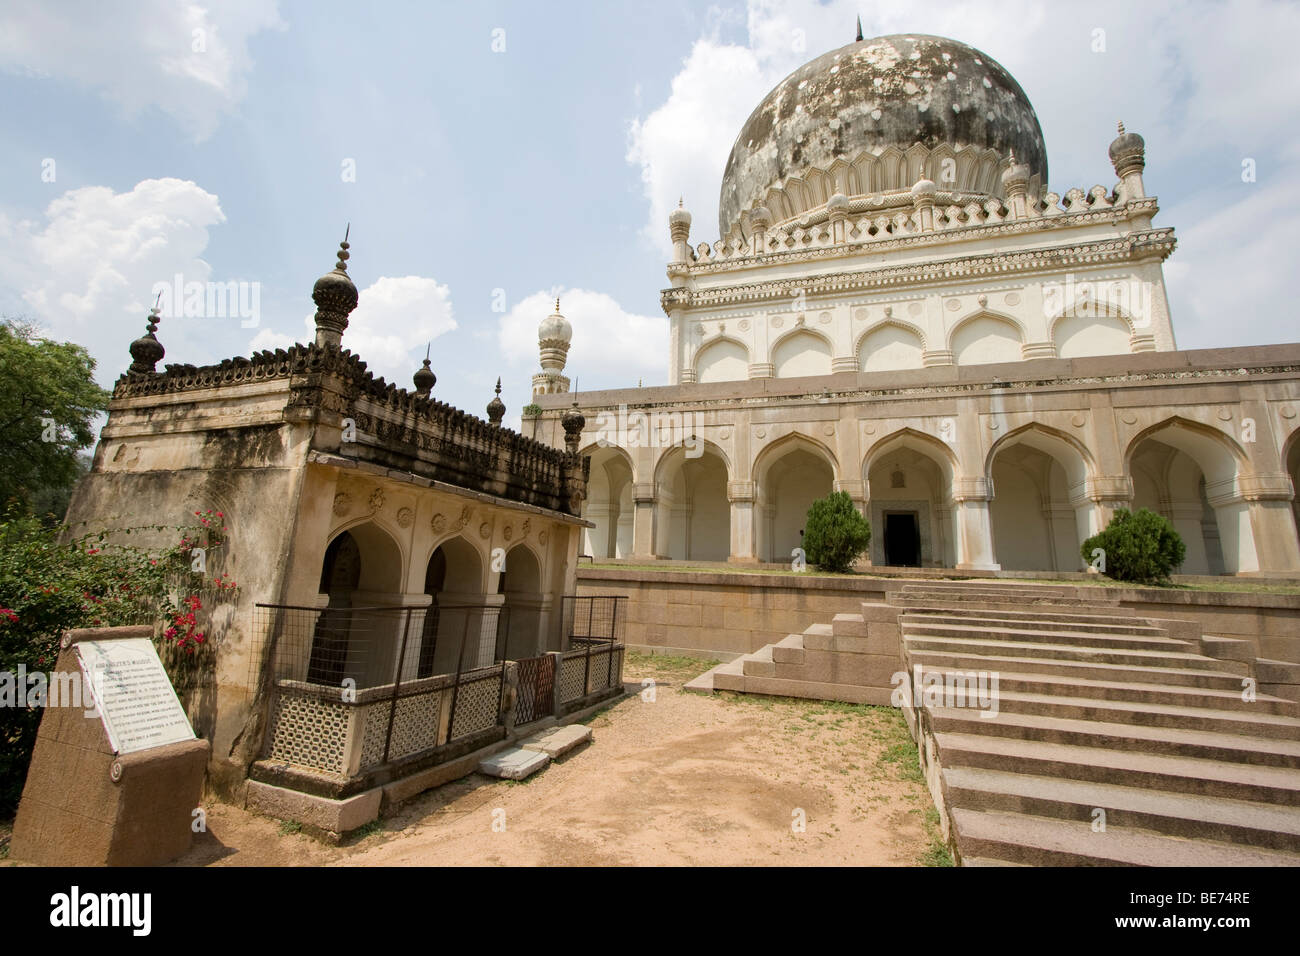 Hayath Baksh Begum Tomb at the Qutb Shahi Tombs in Golconda in Hyderabad India - Stock Image